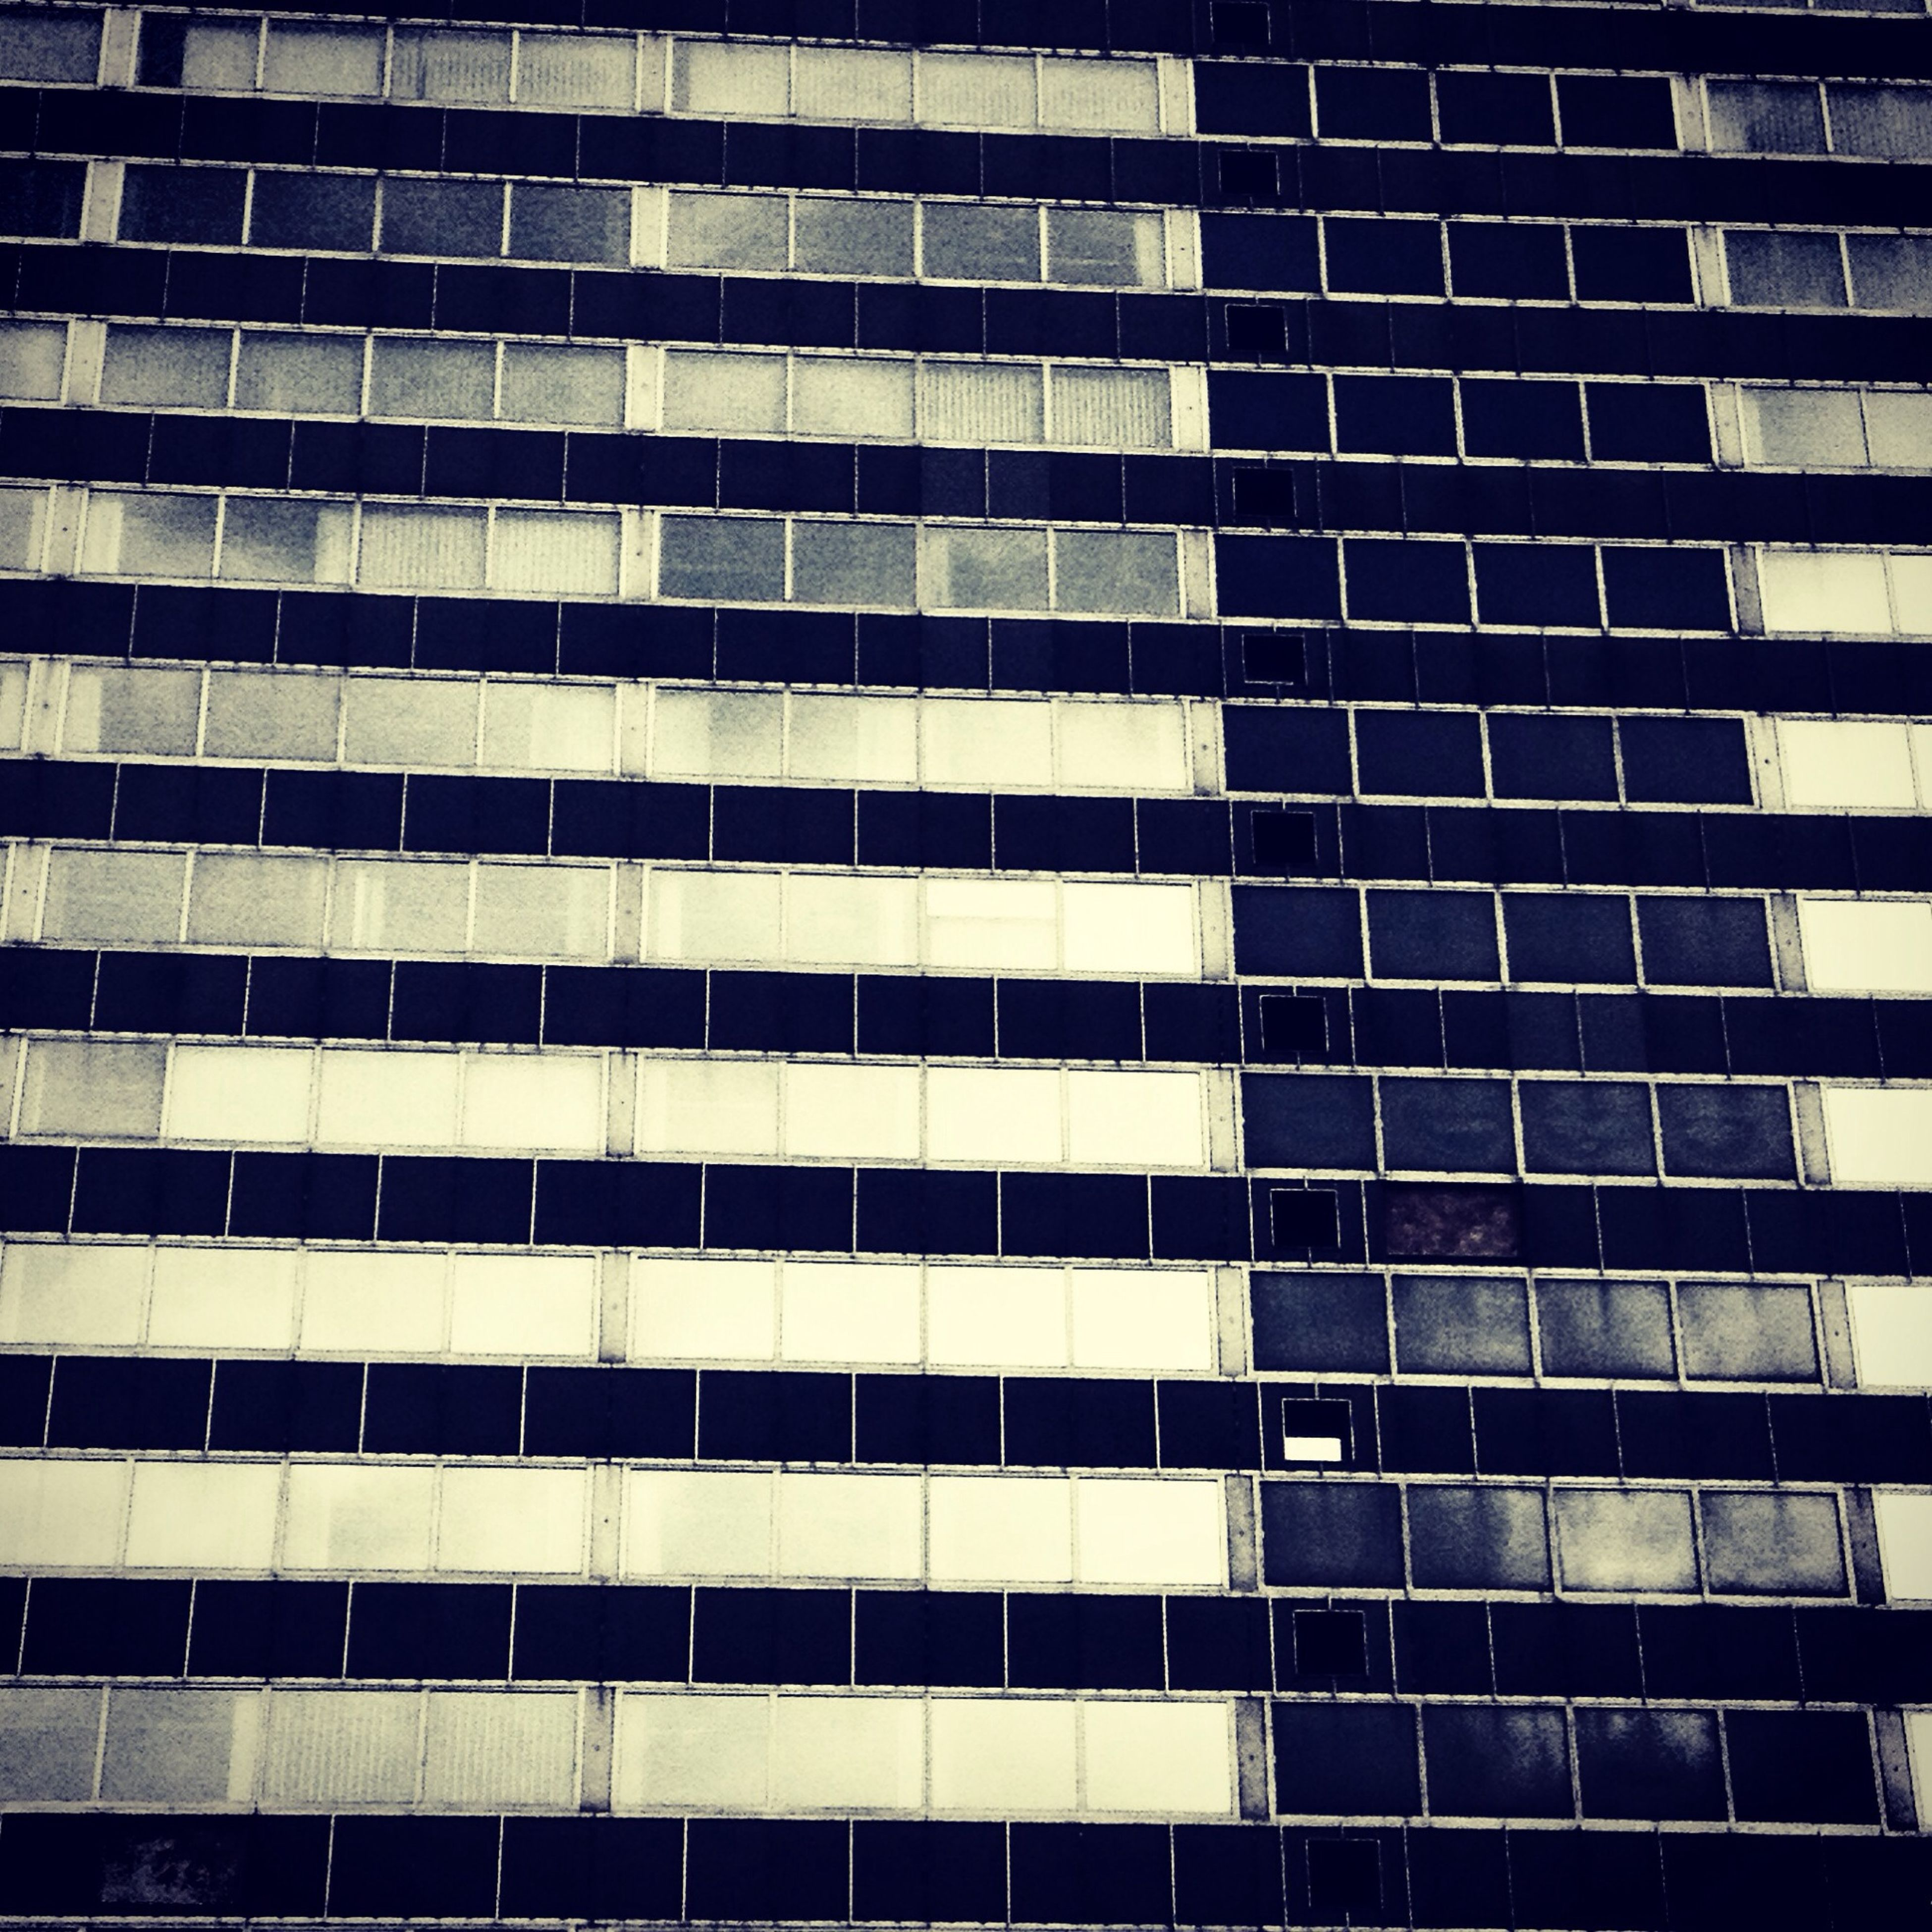 building exterior, architecture, built structure, modern, city, office building, skyscraper, building, low angle view, tall - high, window, glass - material, tower, reflection, city life, day, outdoors, repetition, full frame, pattern